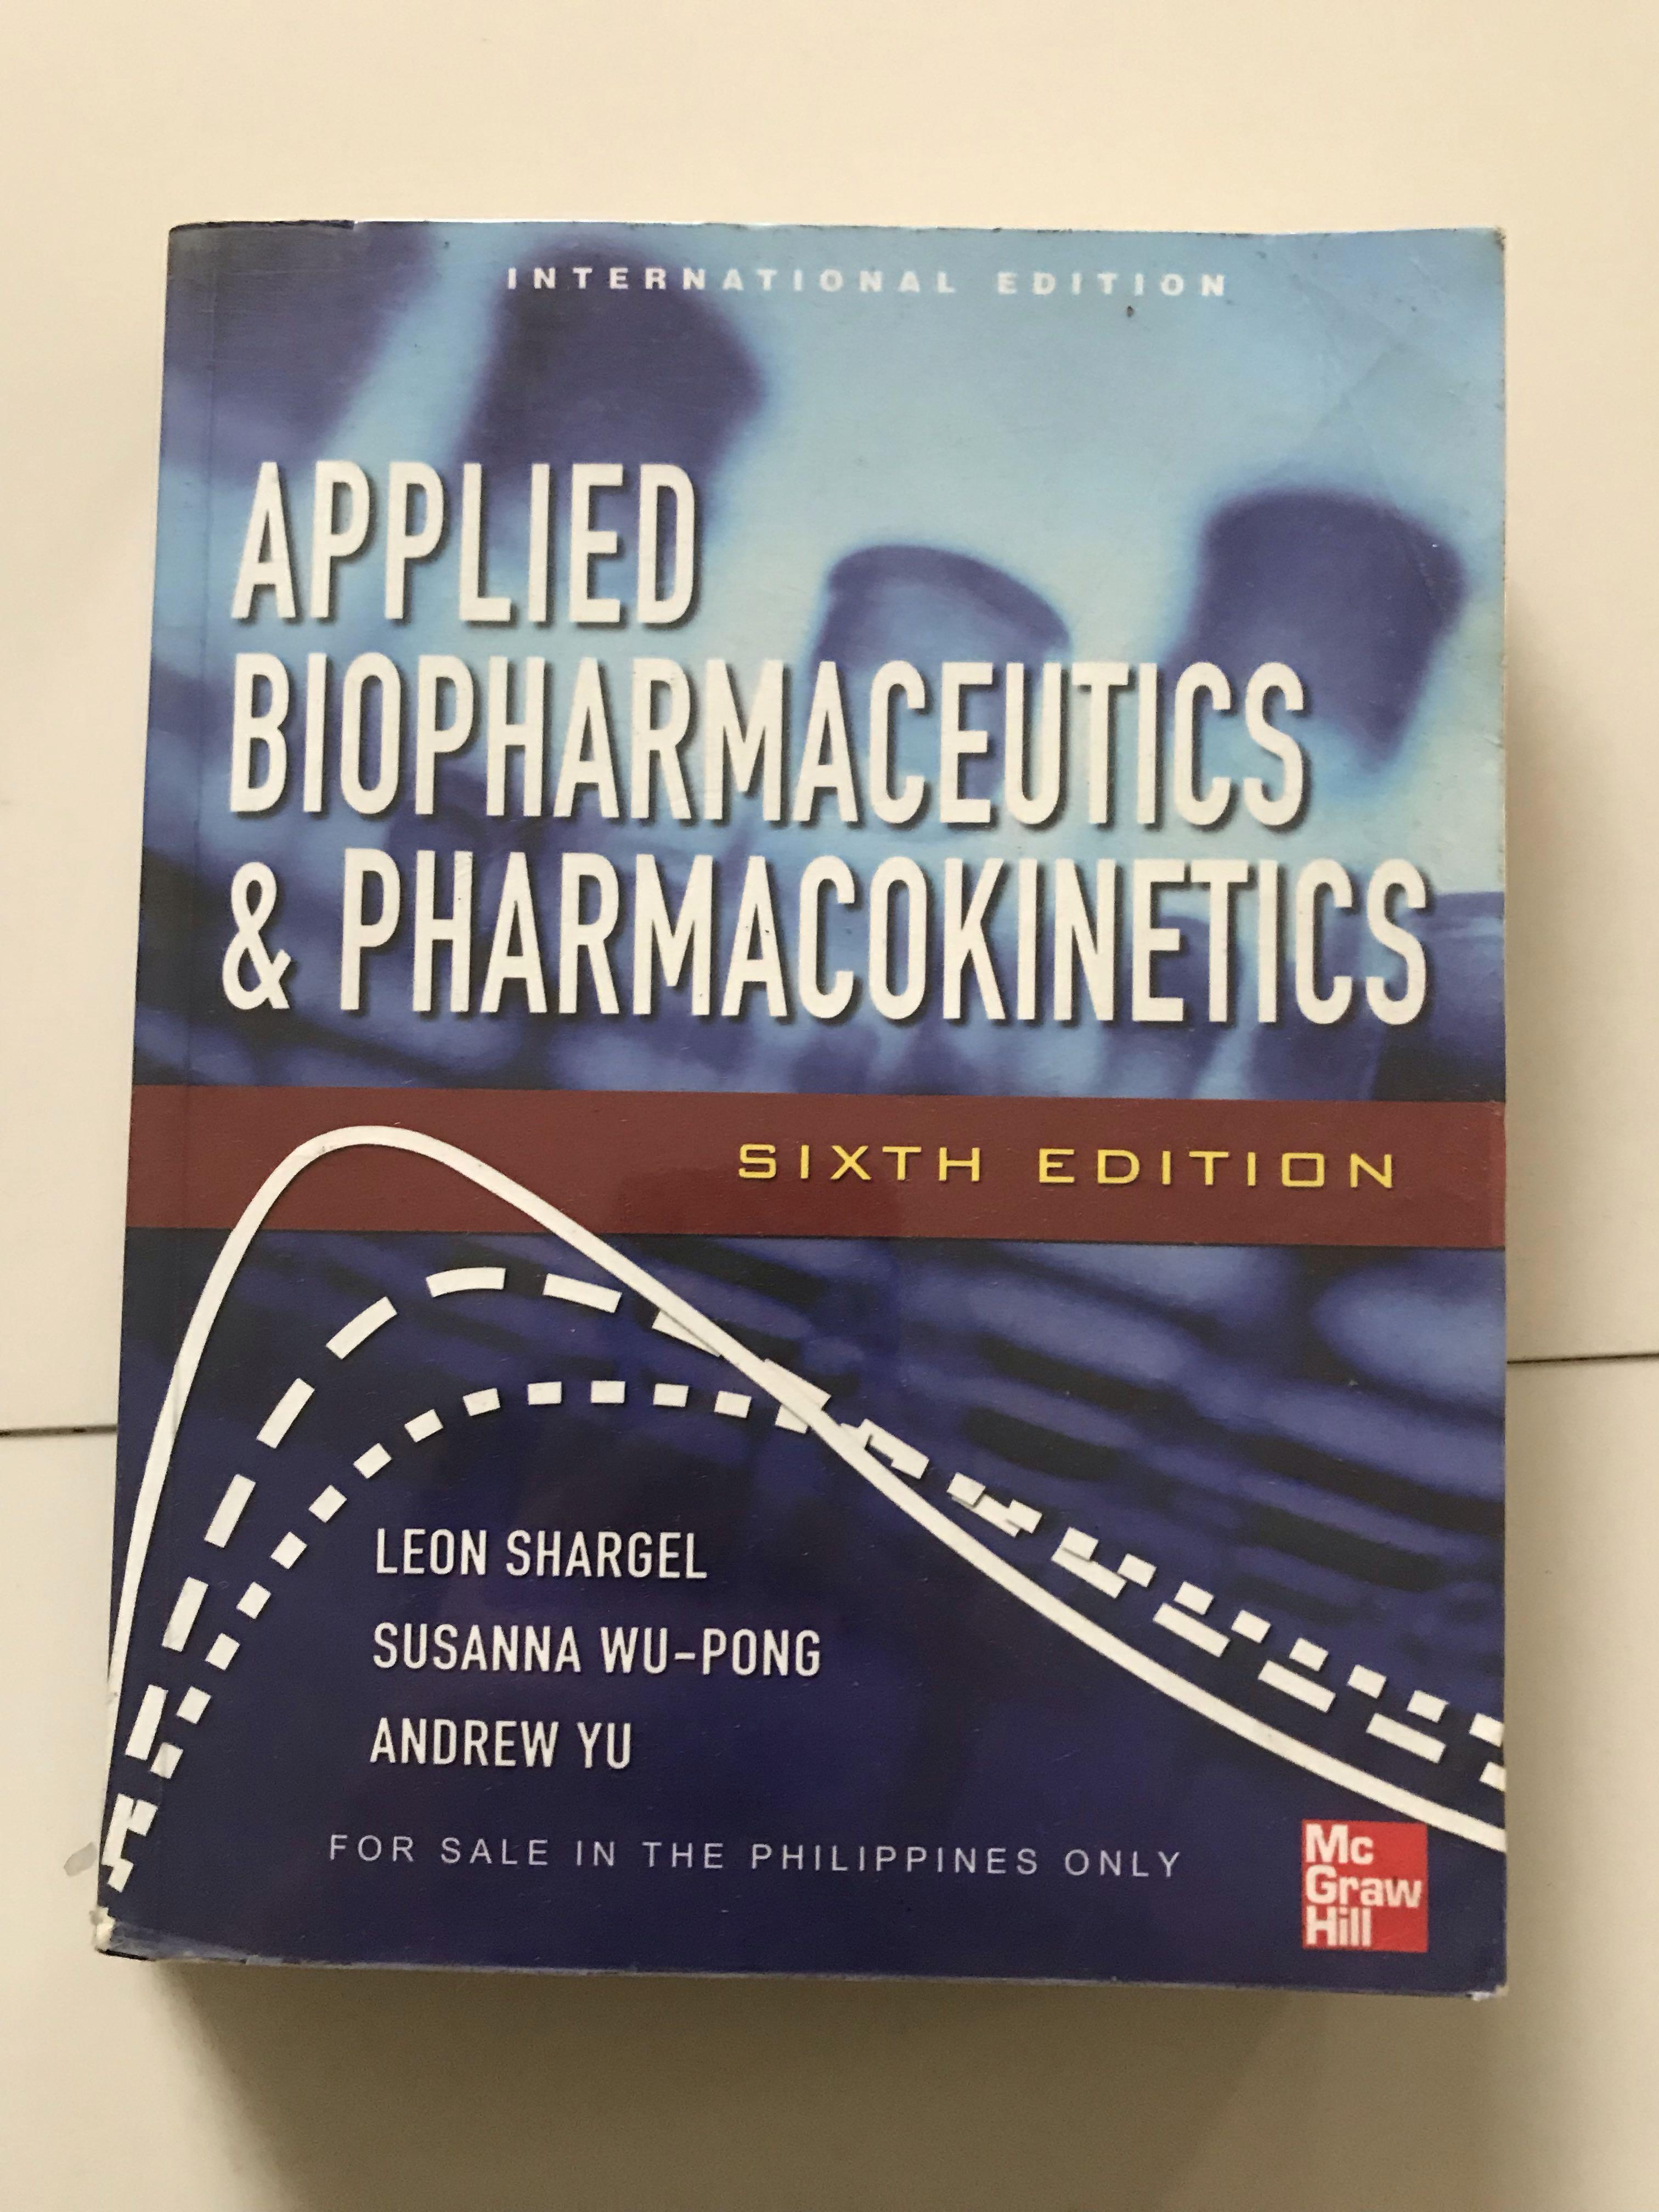 Applied Biopharmaceutics & Pharmacokinetics 6th Edition by Shargel, Wu-pong, & Yu